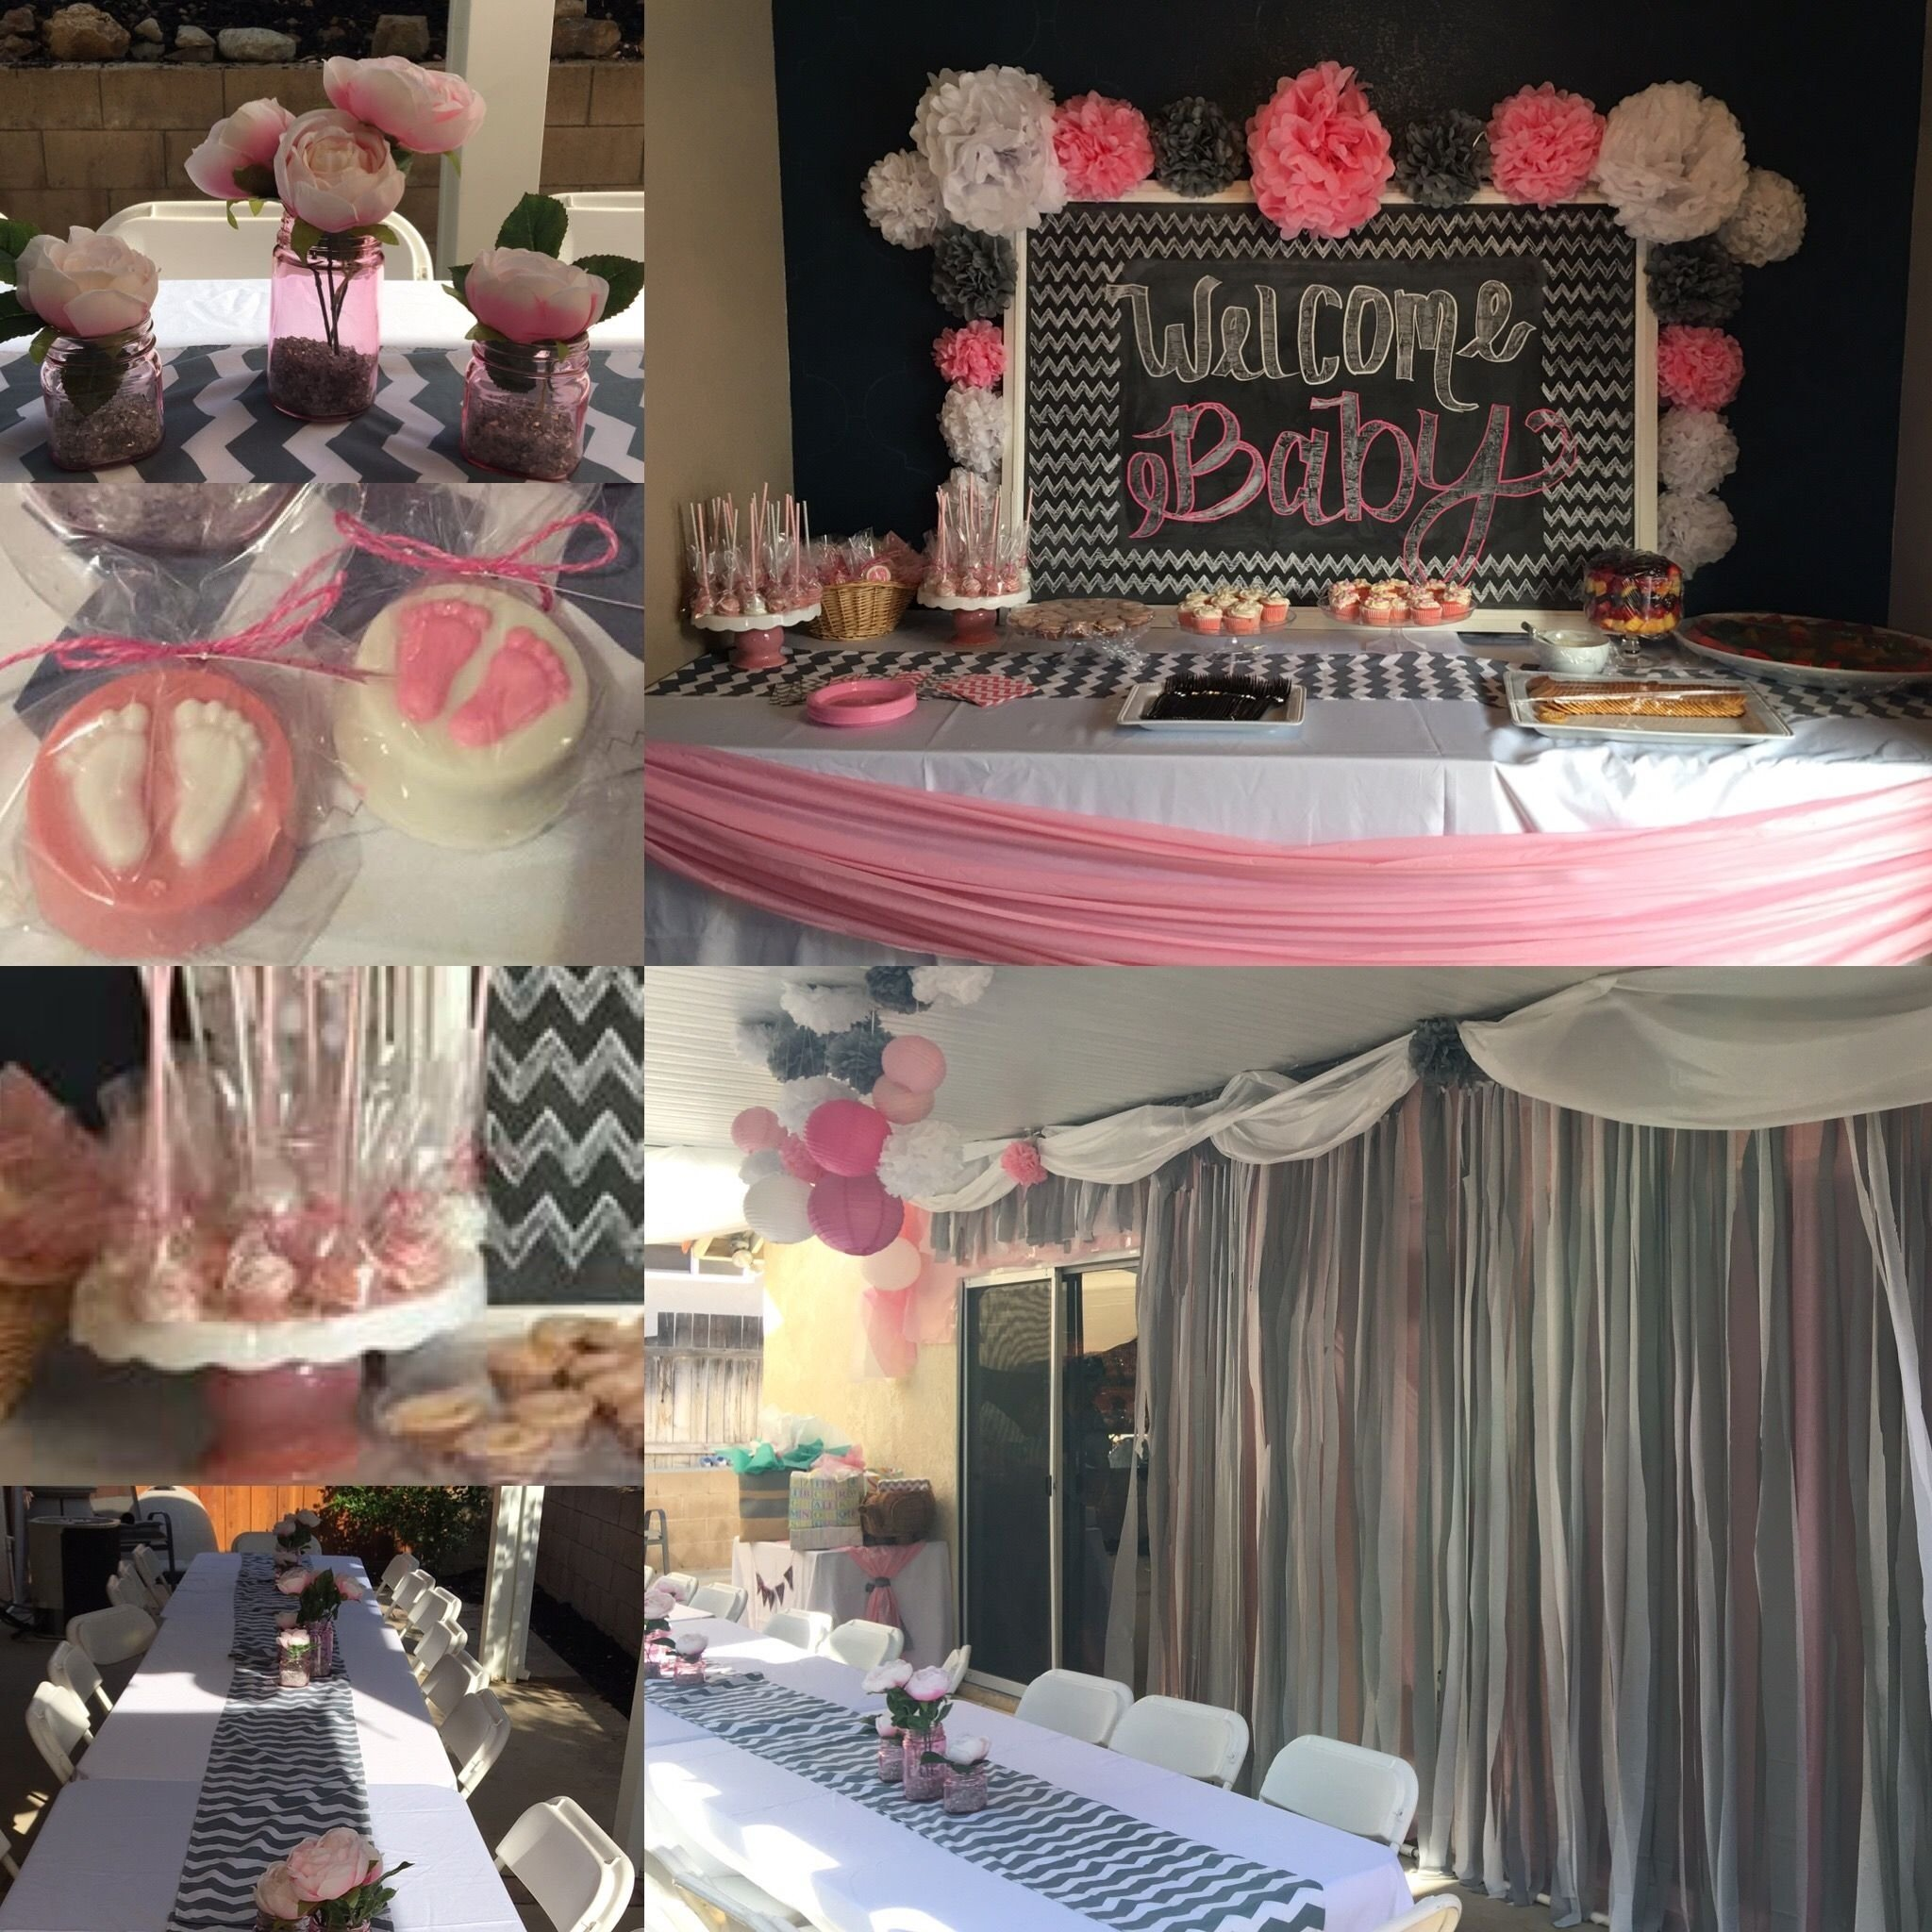 10 Stylish Pink And Gray Baby Shower Ideas baby shower decorations grey chevron pink and white done 1 2020